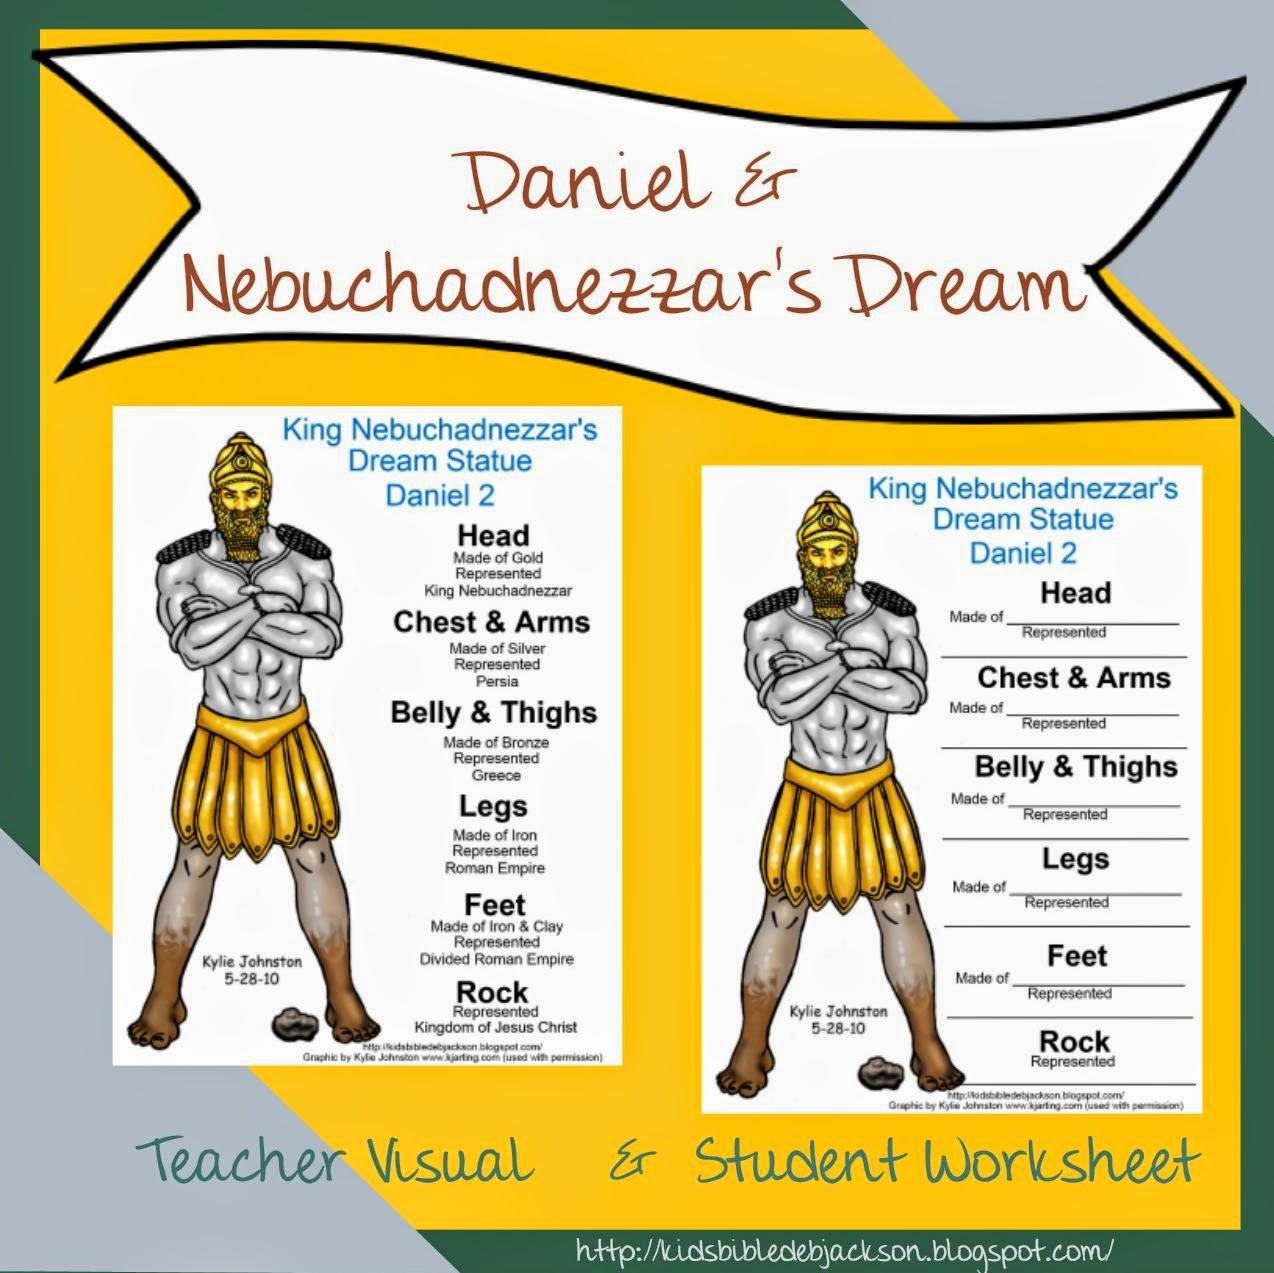 image regarding Bible Lessons for Adults Free Printable identified as Bible Lesson and No cost Printable: Daniel Nebuchadnezzars Aspiration